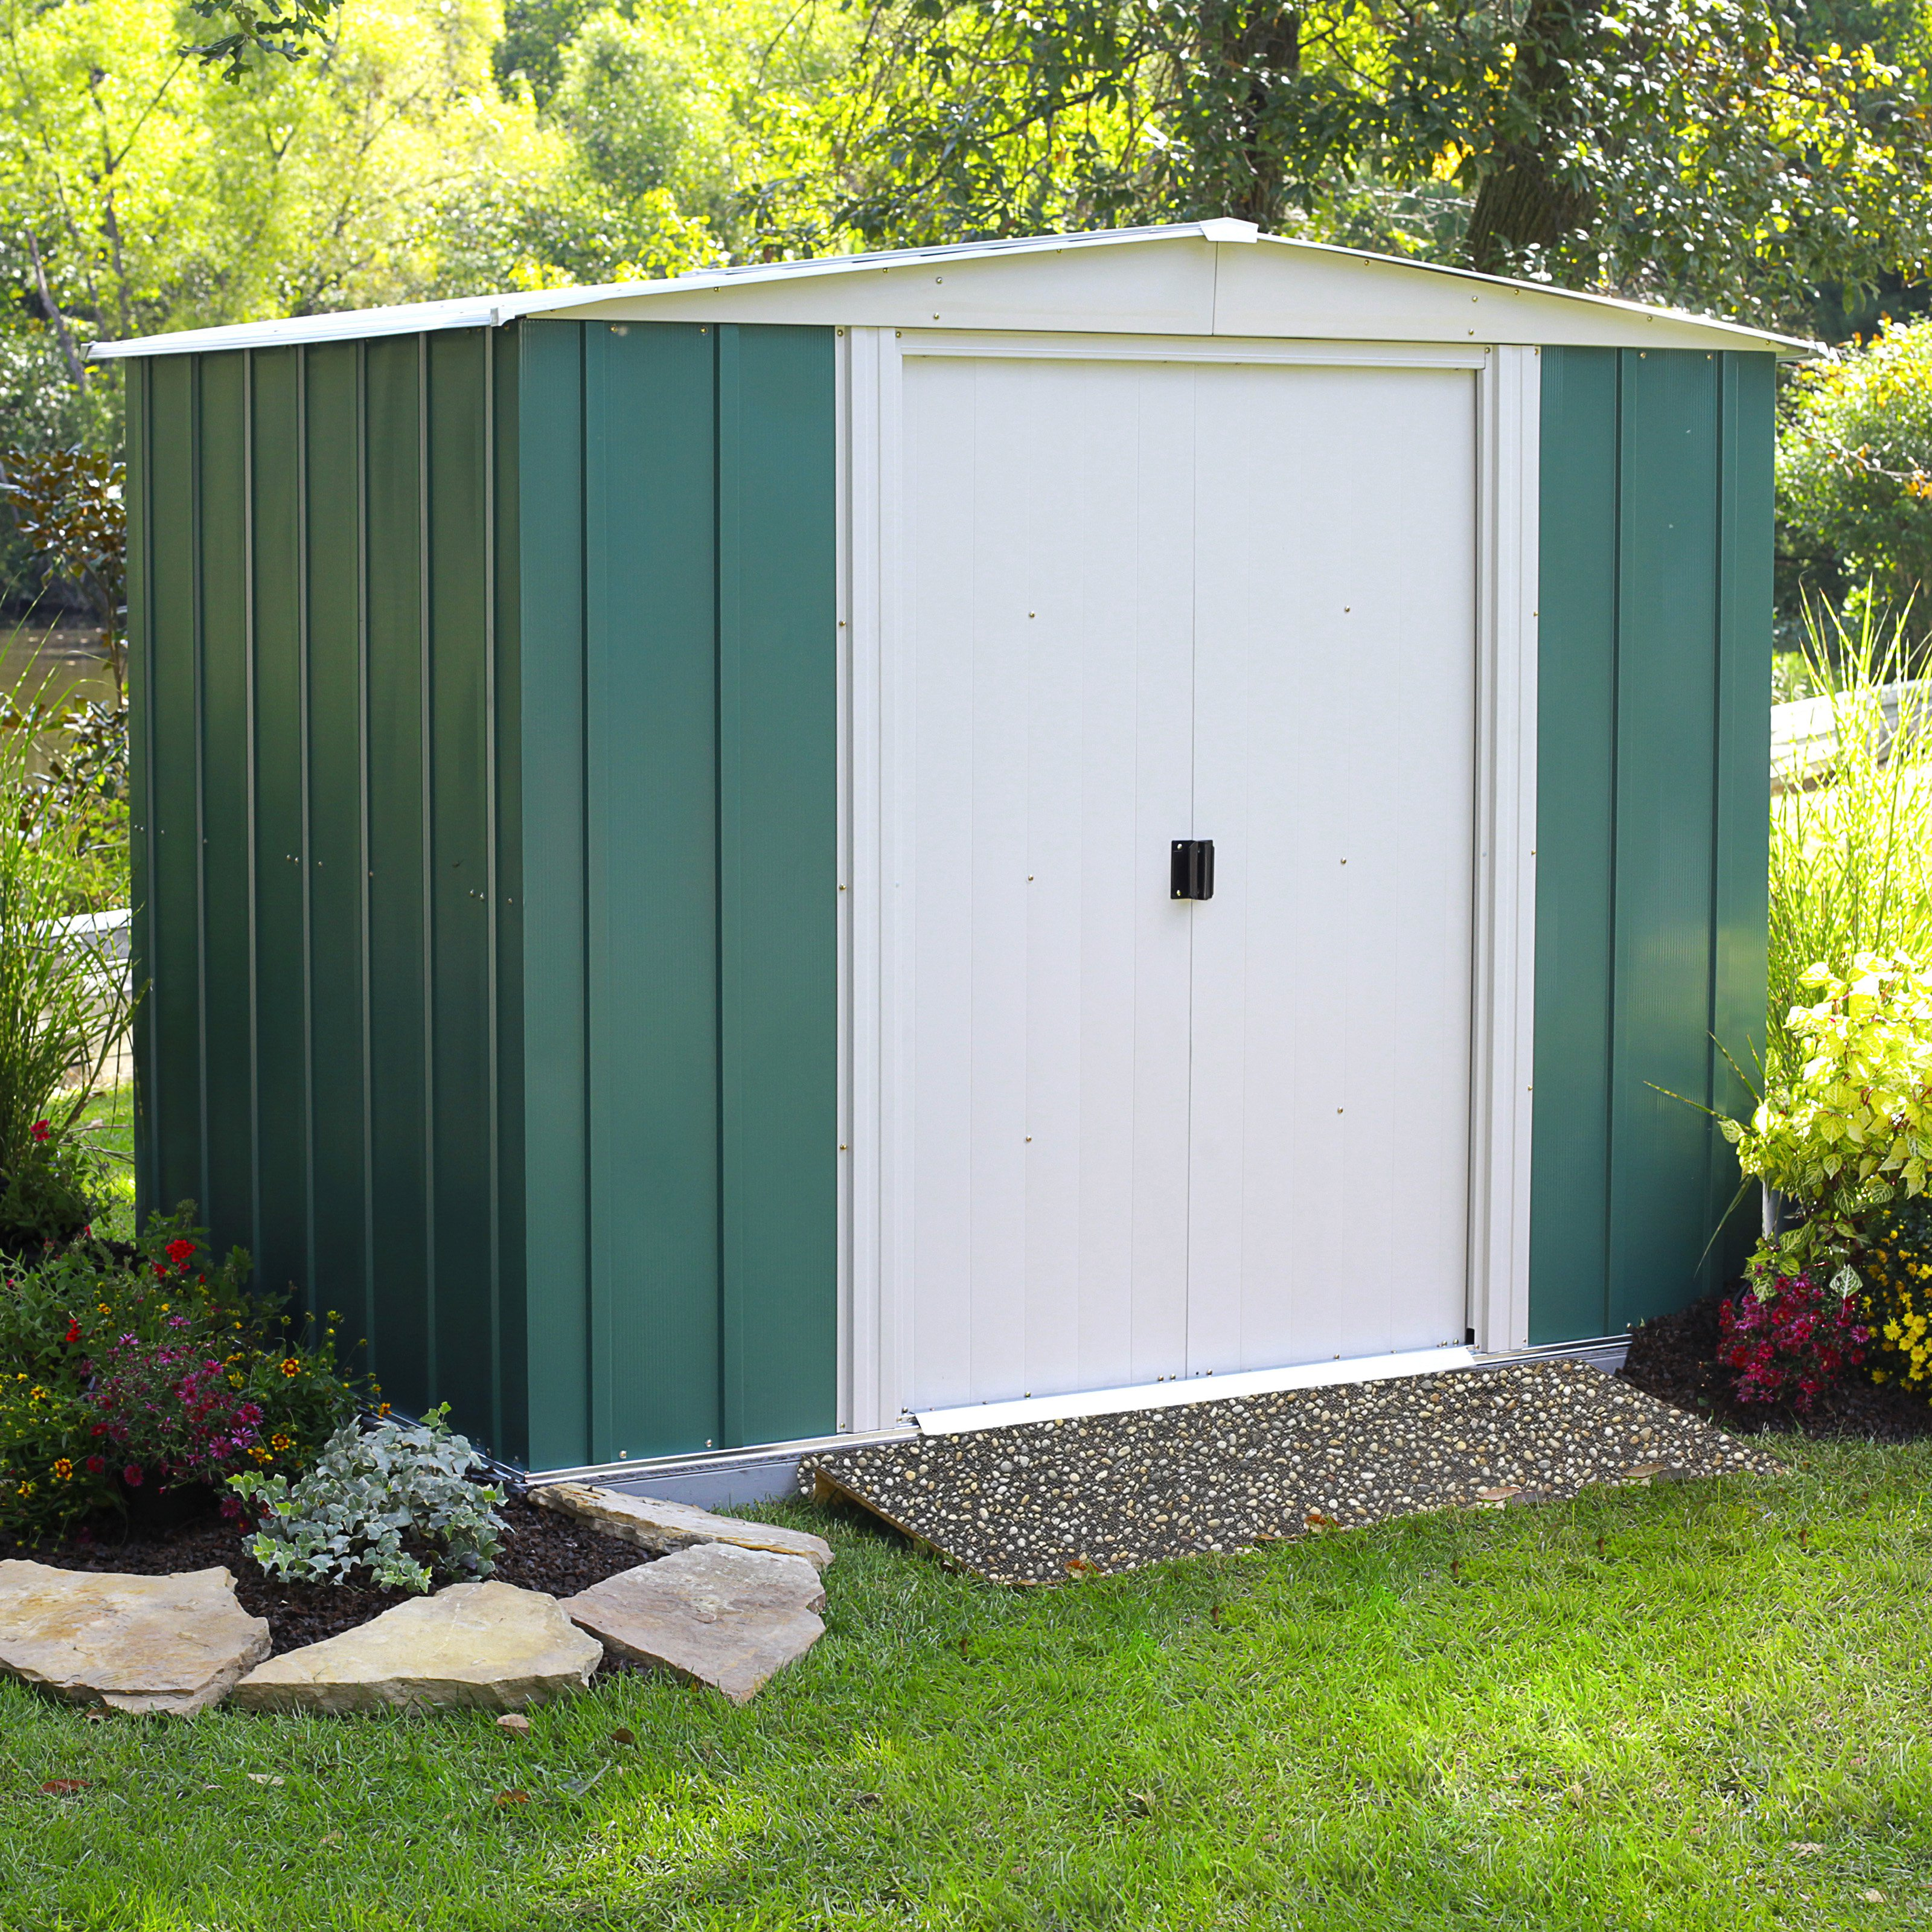 Arrow Euro Hamlet 6 X 10 Ft. Storage Shed